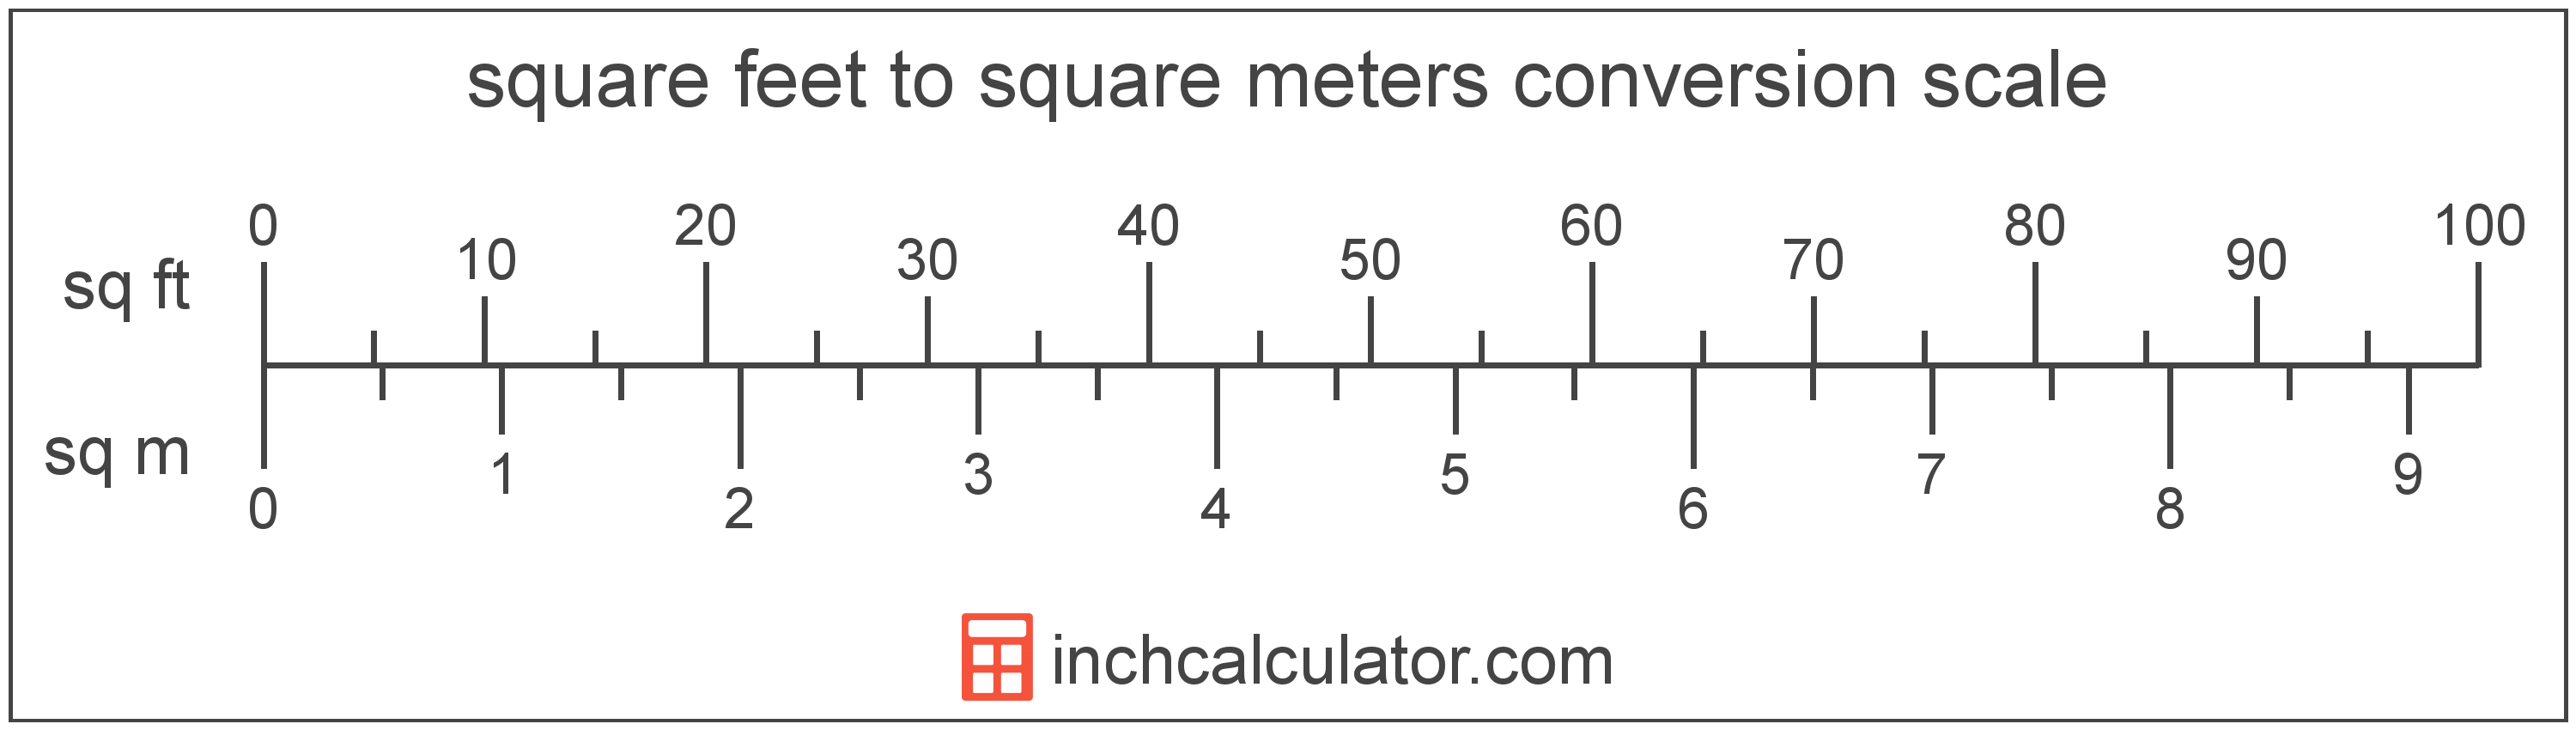 Convert Square Meters to Square Feet - (sq m to sq ft)